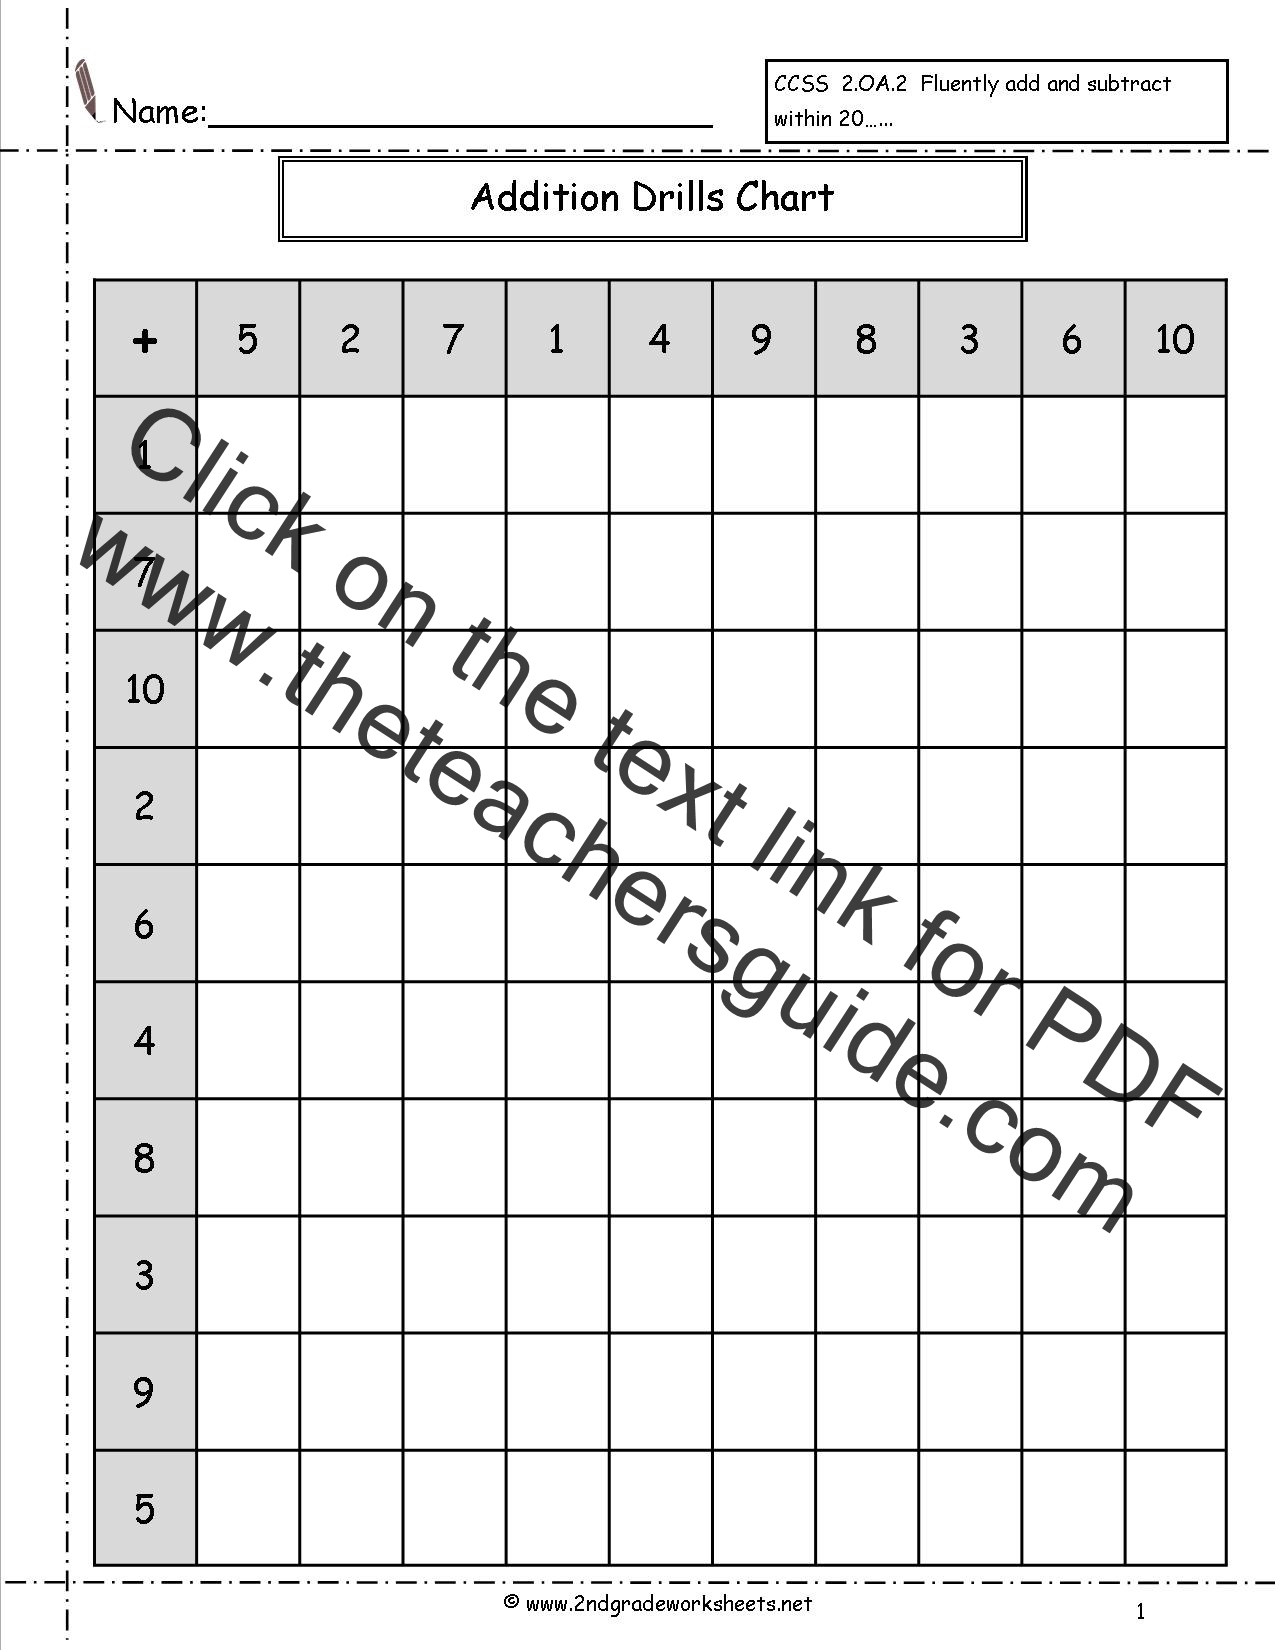 Single Digit Addition Fluency Drills Worksheets – Addition Within 20 Worksheet